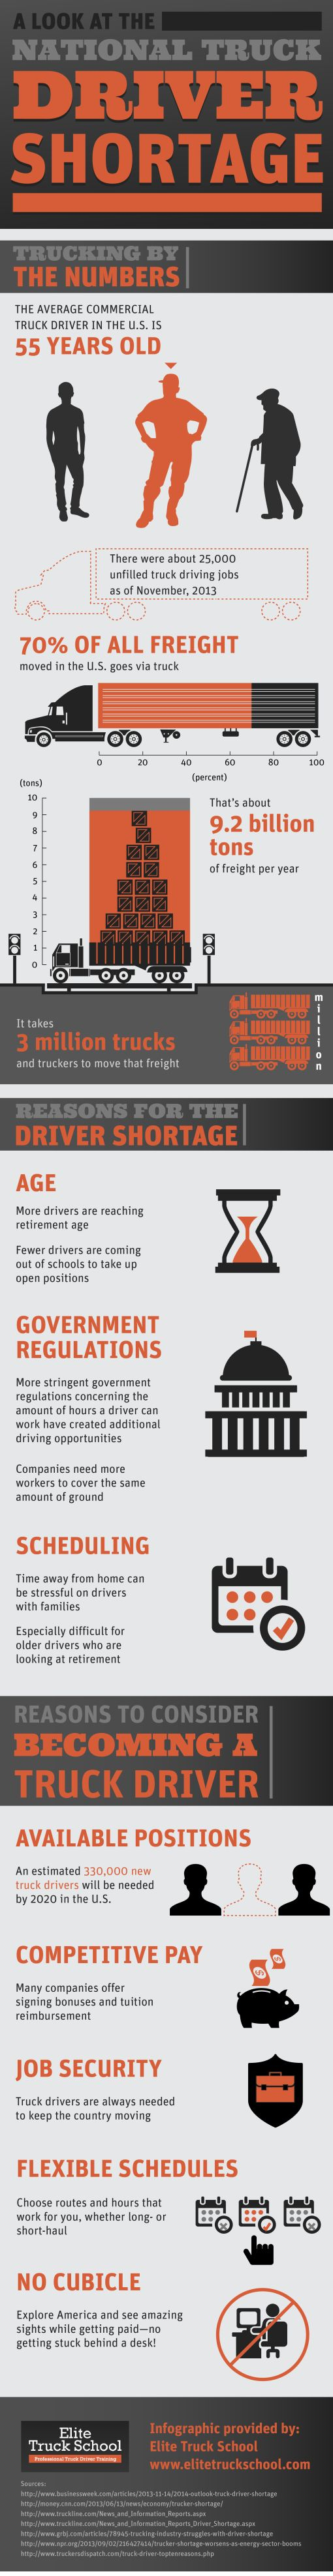 If you are looking for job security, consider truck driving school. Truck drivers are always needed to keep the country moving! Learn more by taking a look at this infographic from a truck driver training program in Hillsboro.